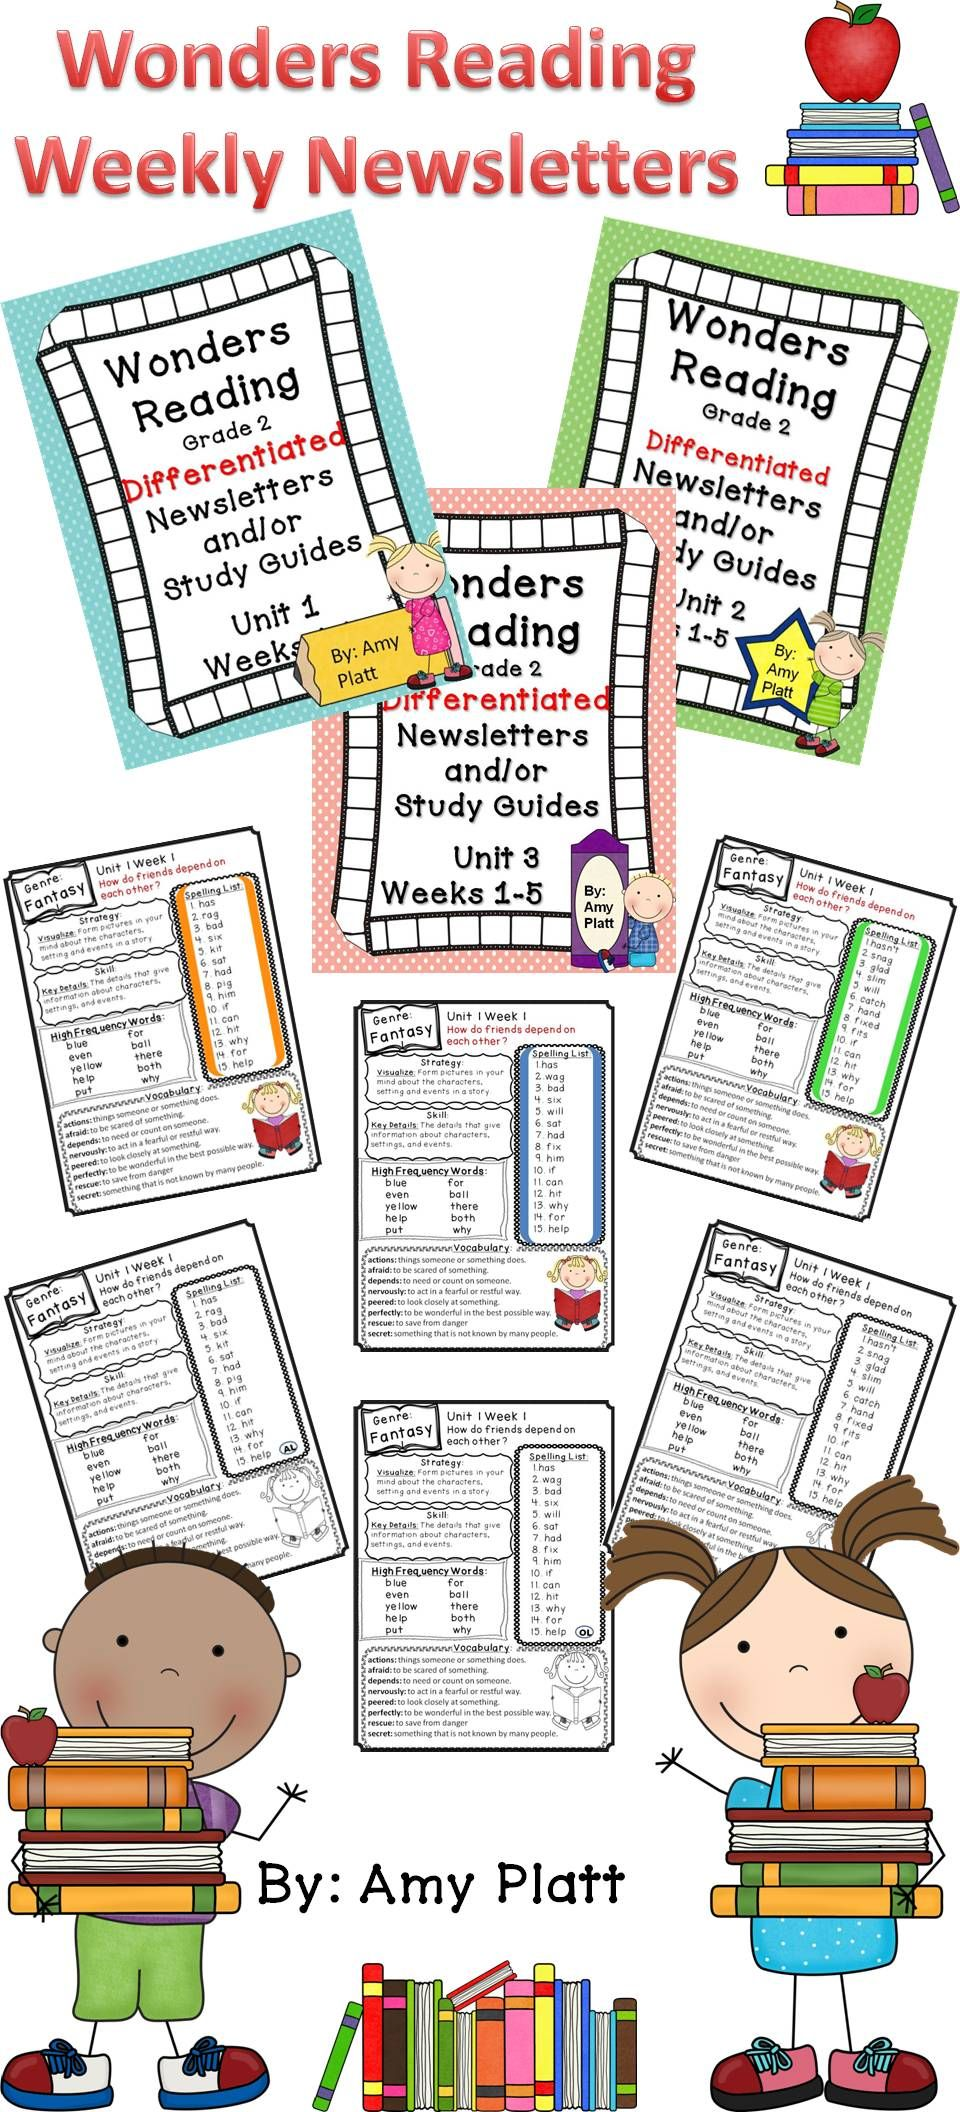 Weekly Differentiated Newsletters / Study Guides for the Wonders Reading  Program Grade 2.